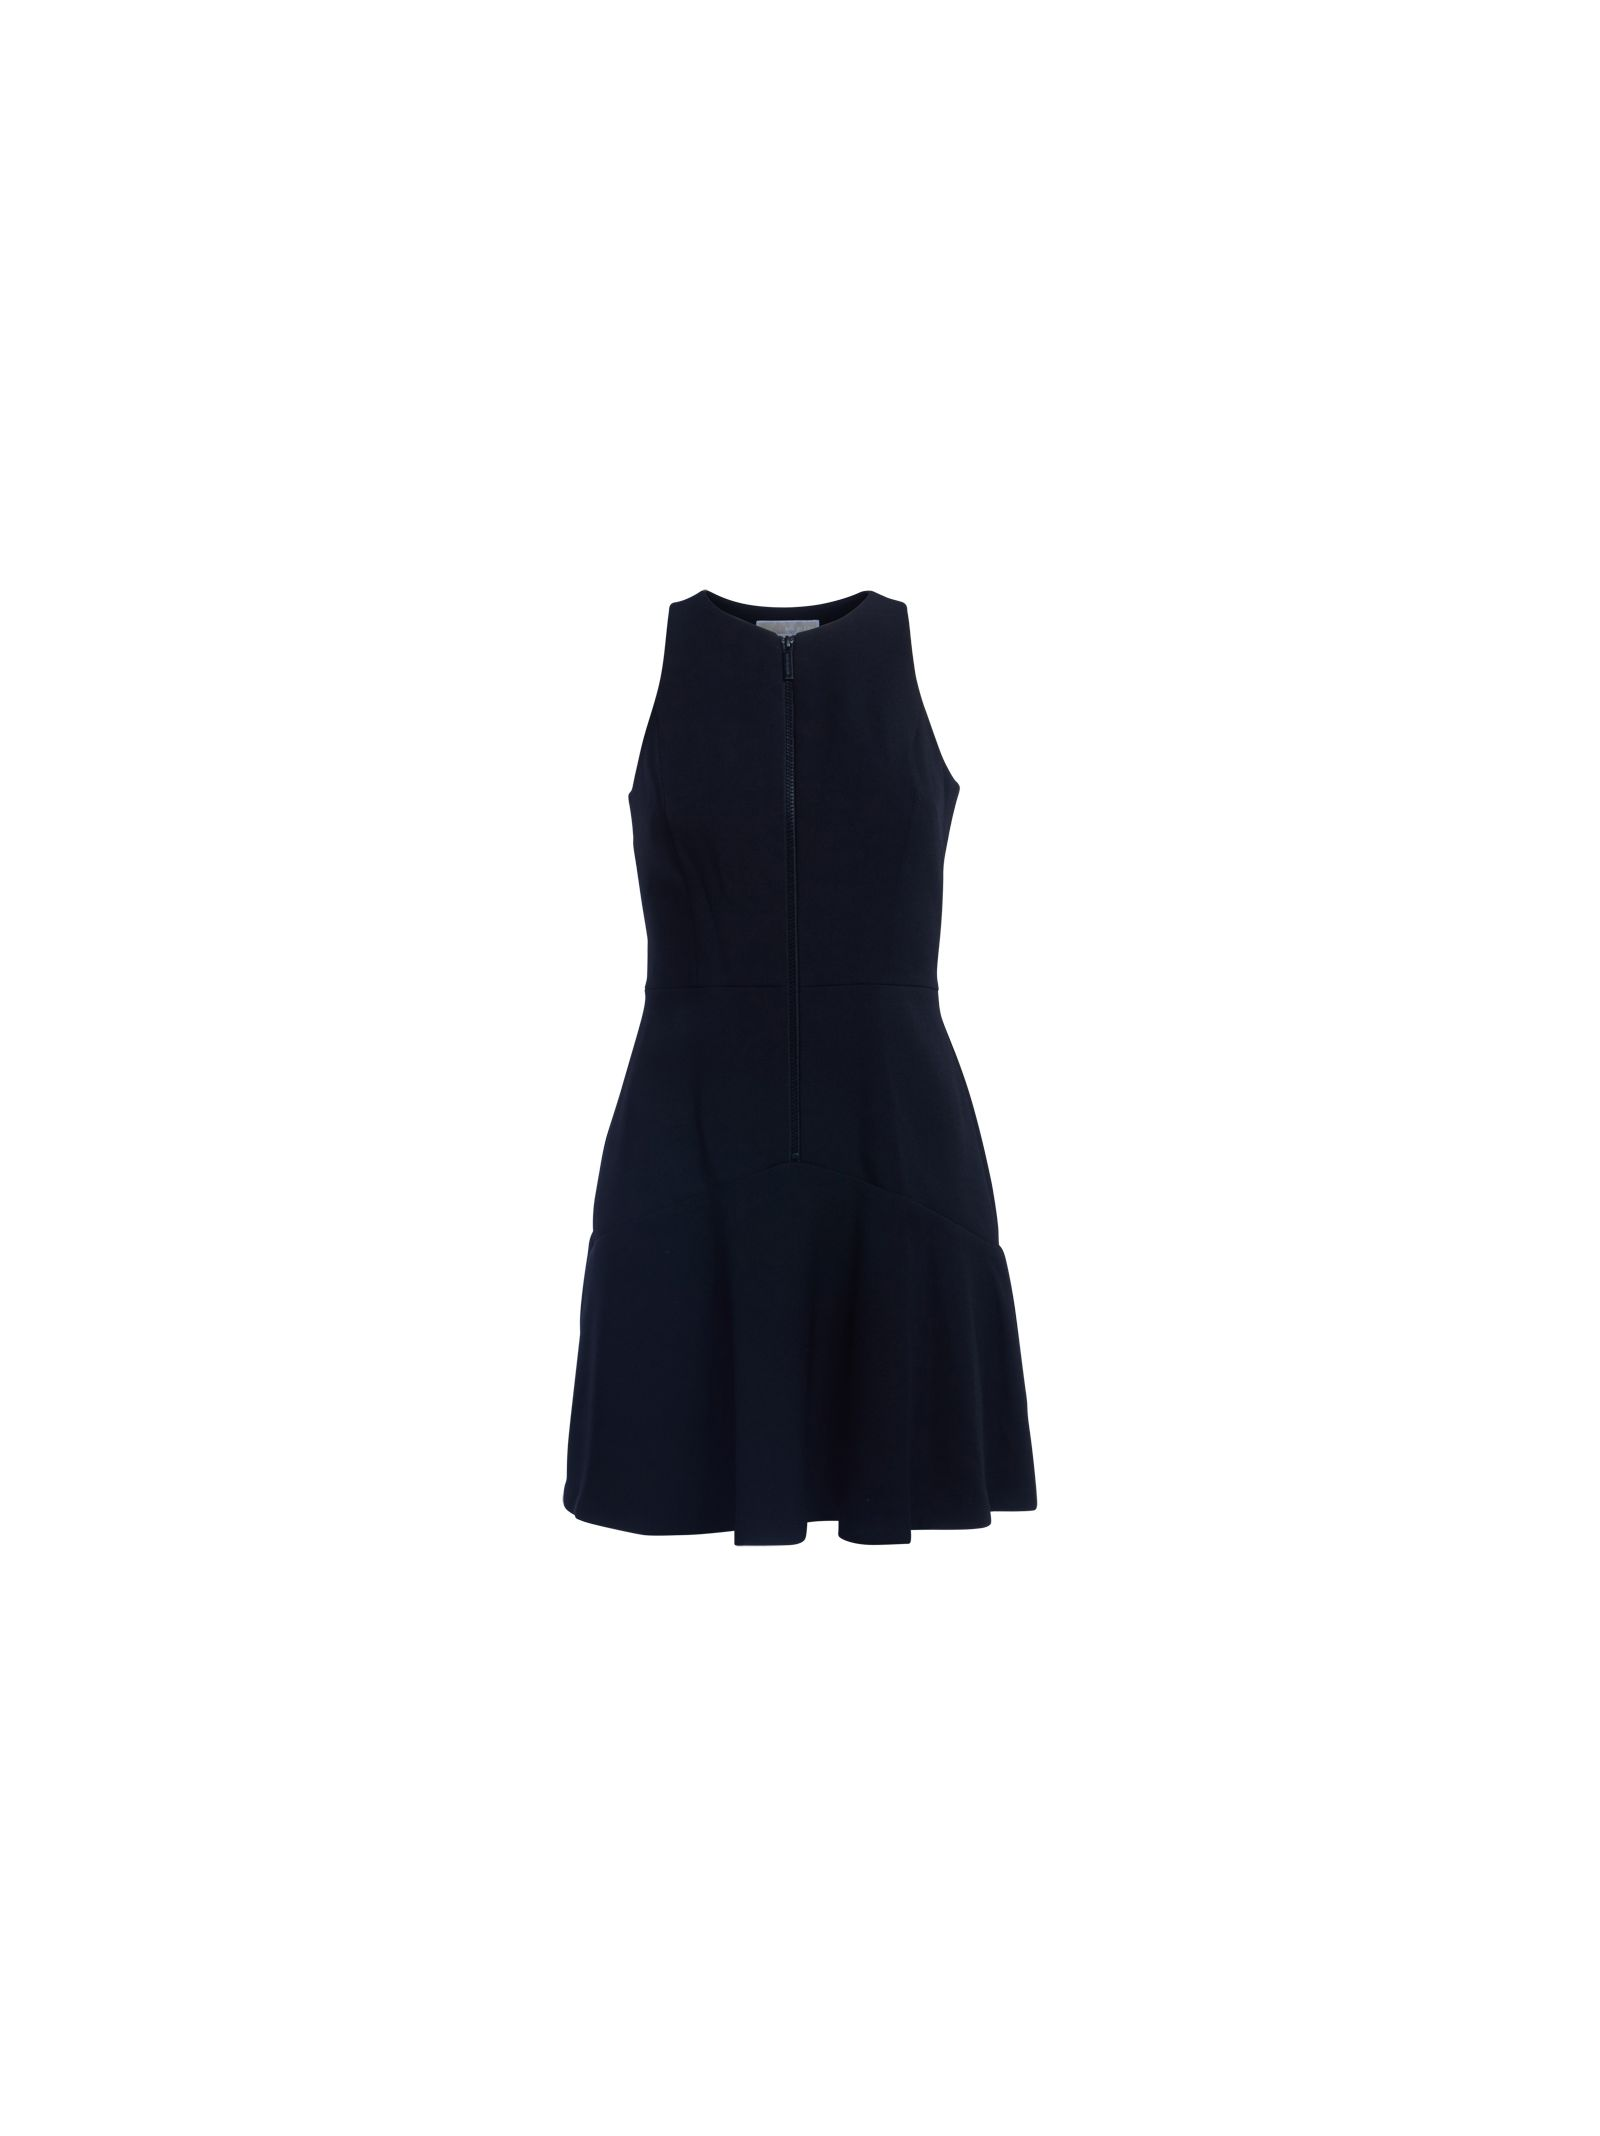 michael kors female  michael kors black dress